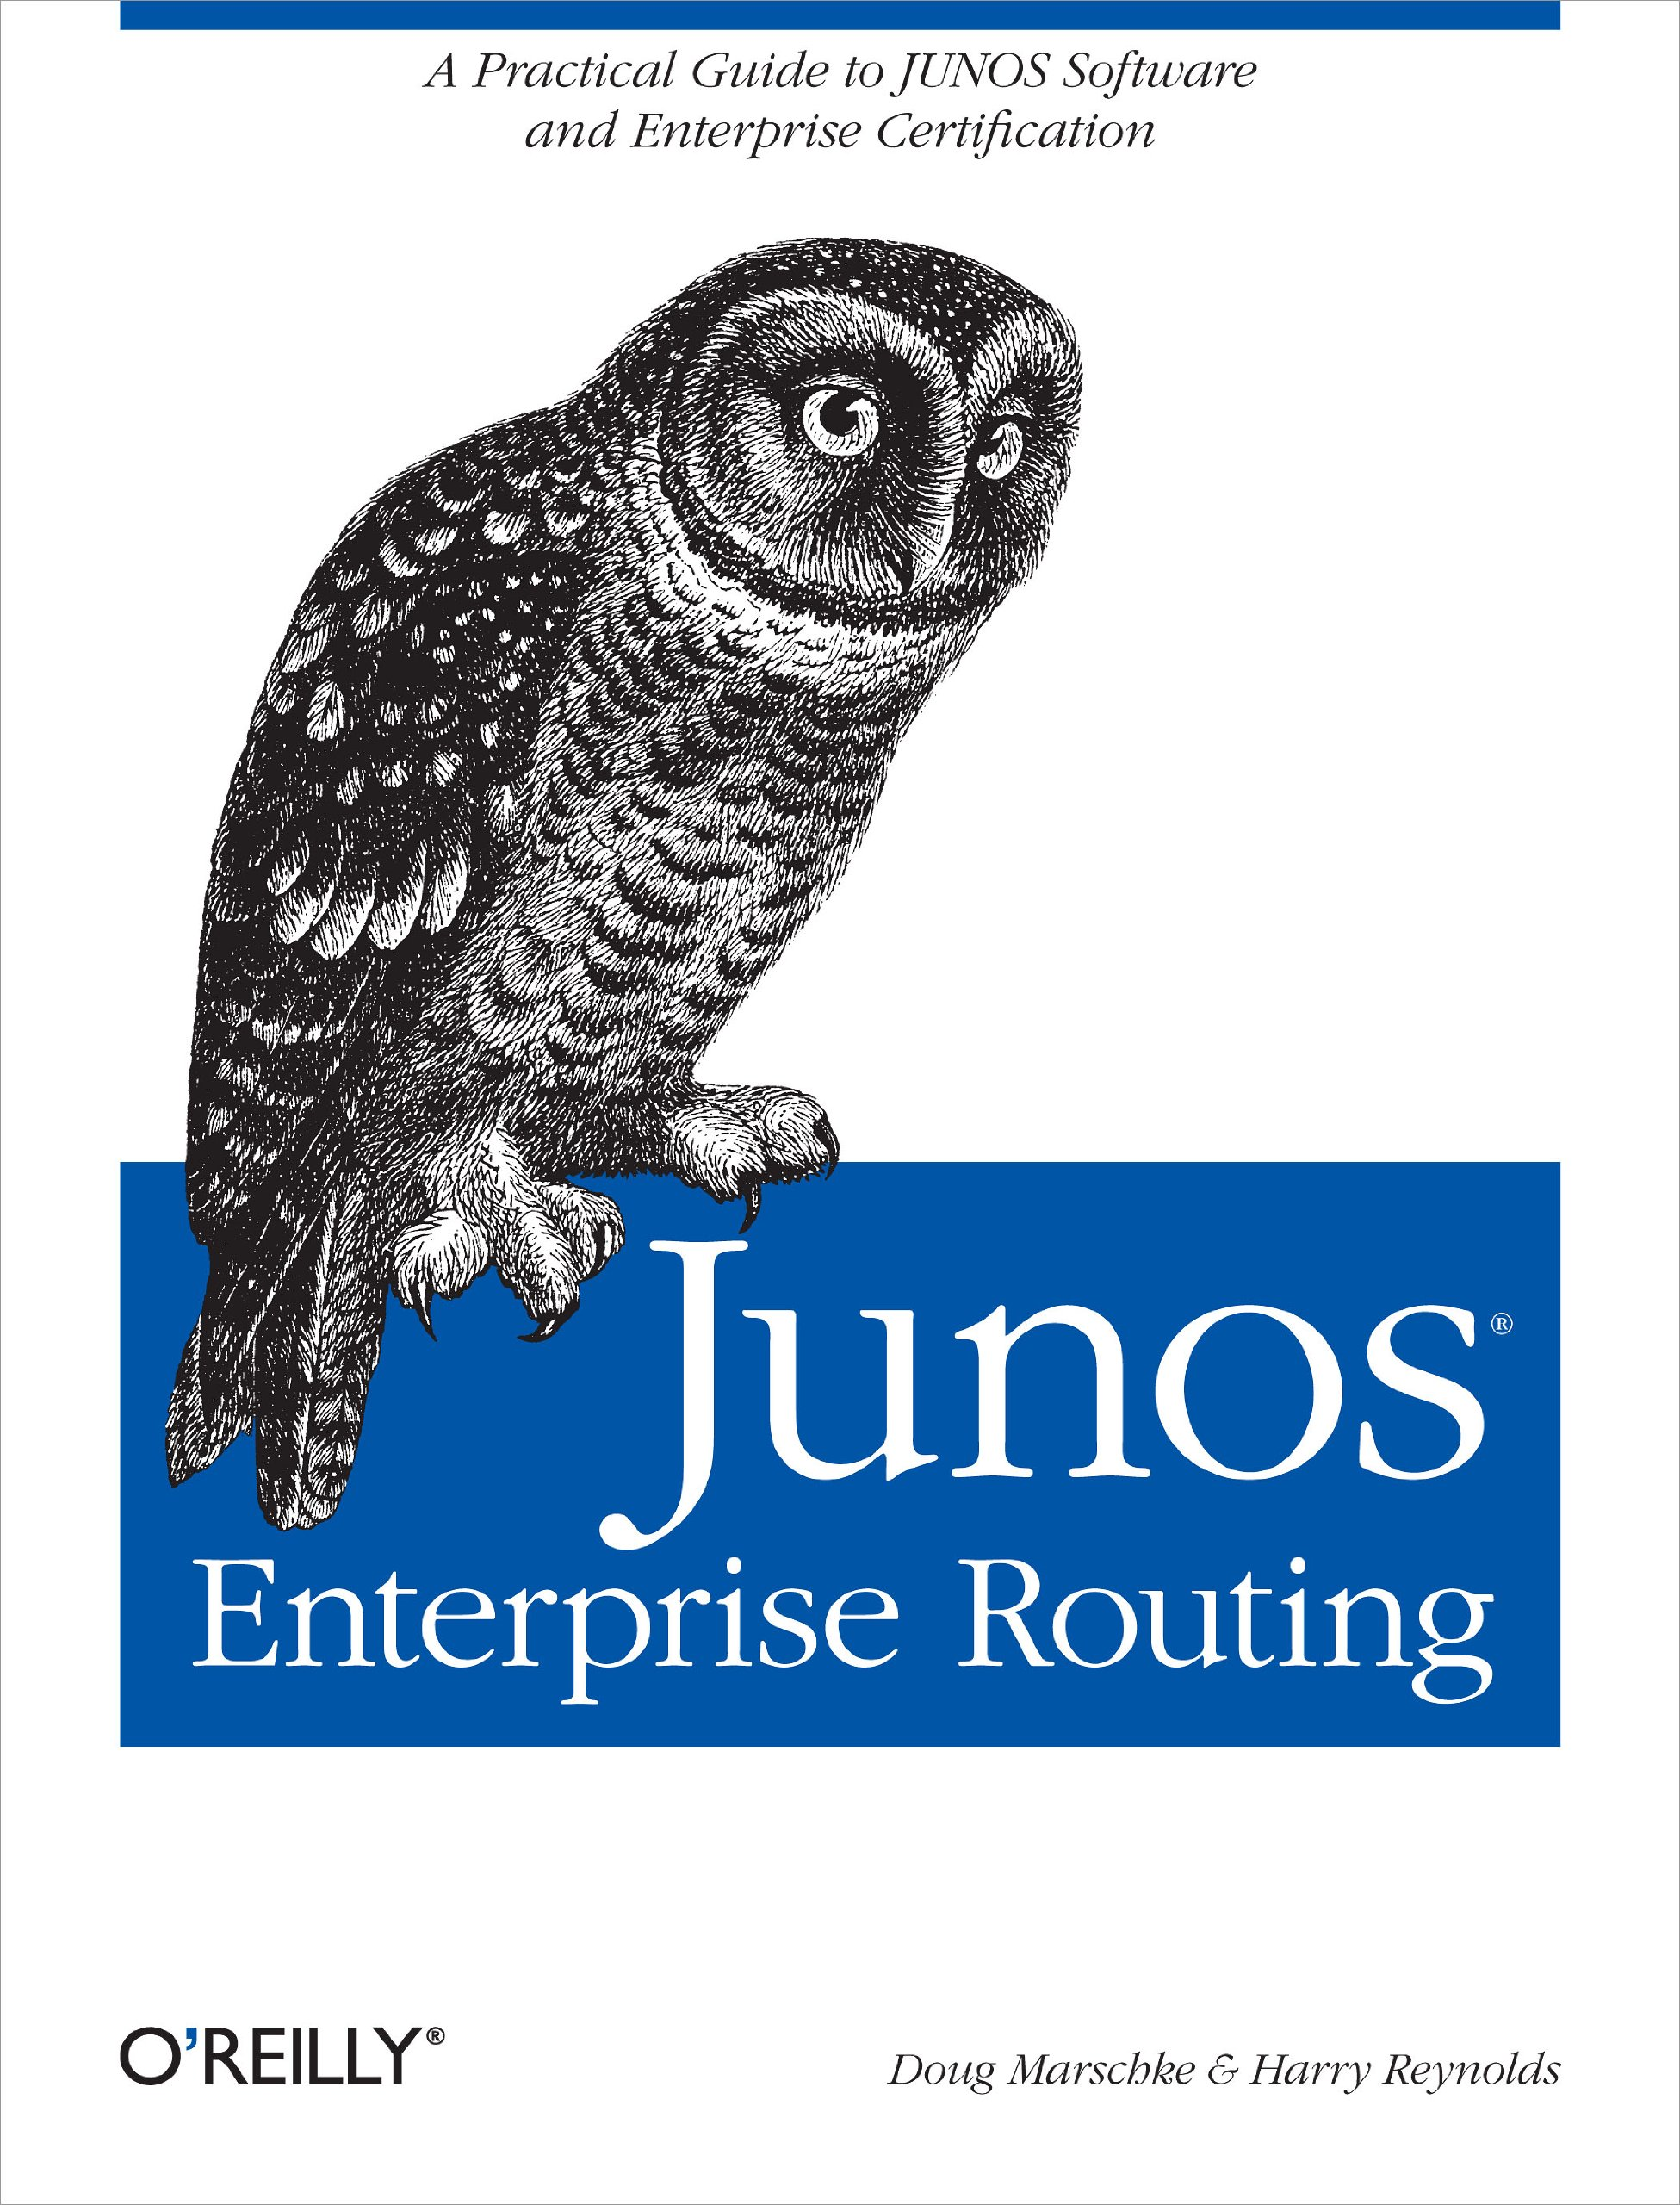 JUNOS Enterprise Routing: A Practical Guide To JUNOS Software And Enterprise Certification (English Edition)